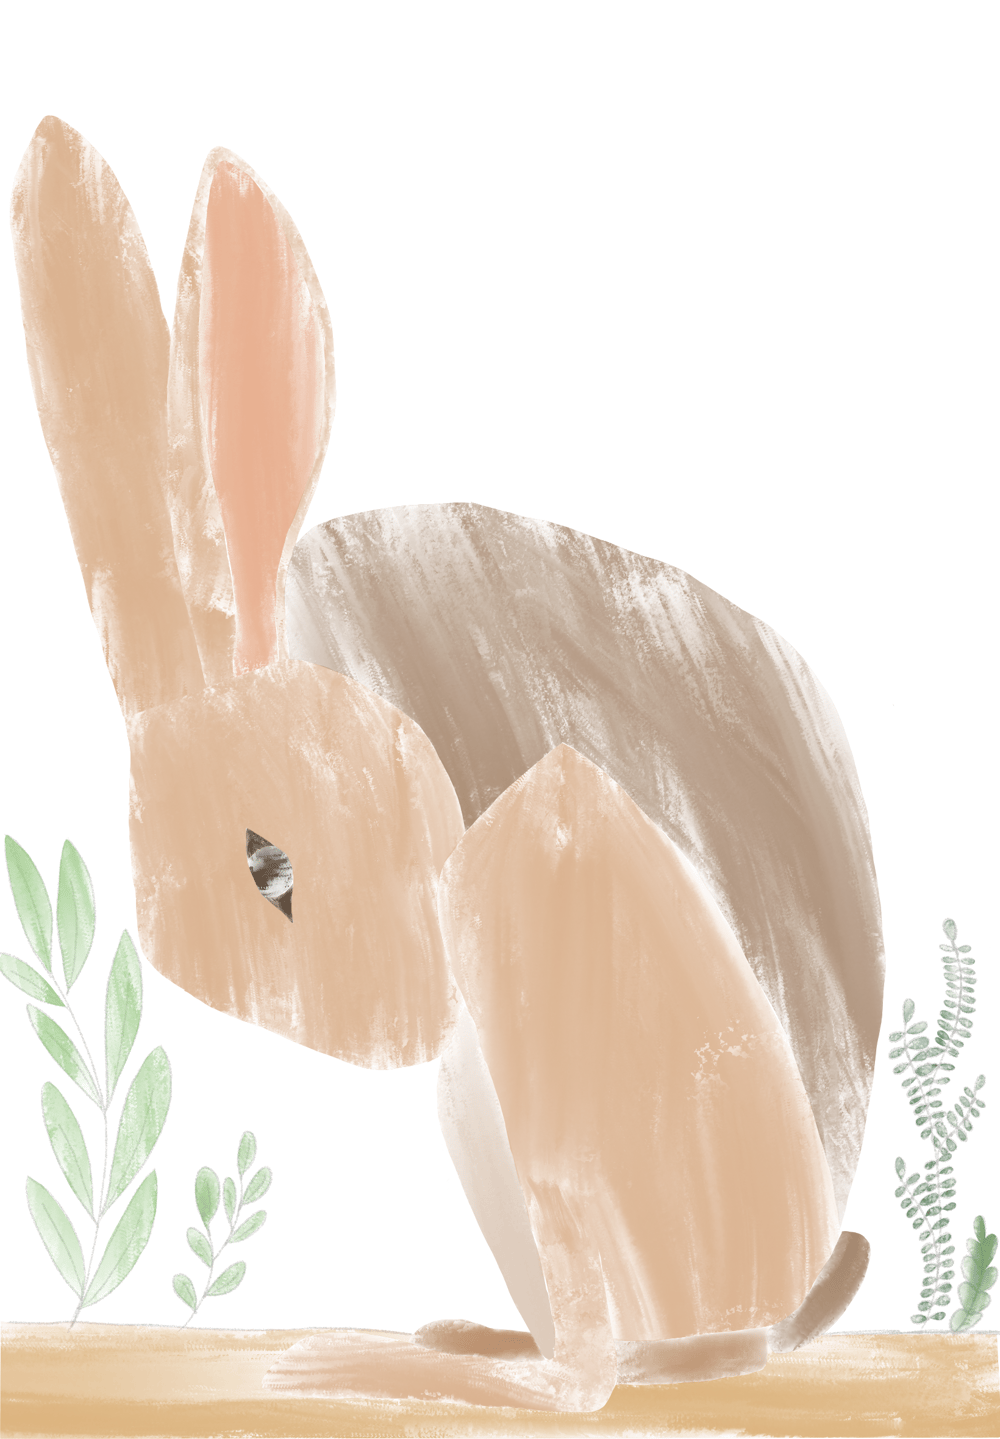 Hare - image 1 - student project